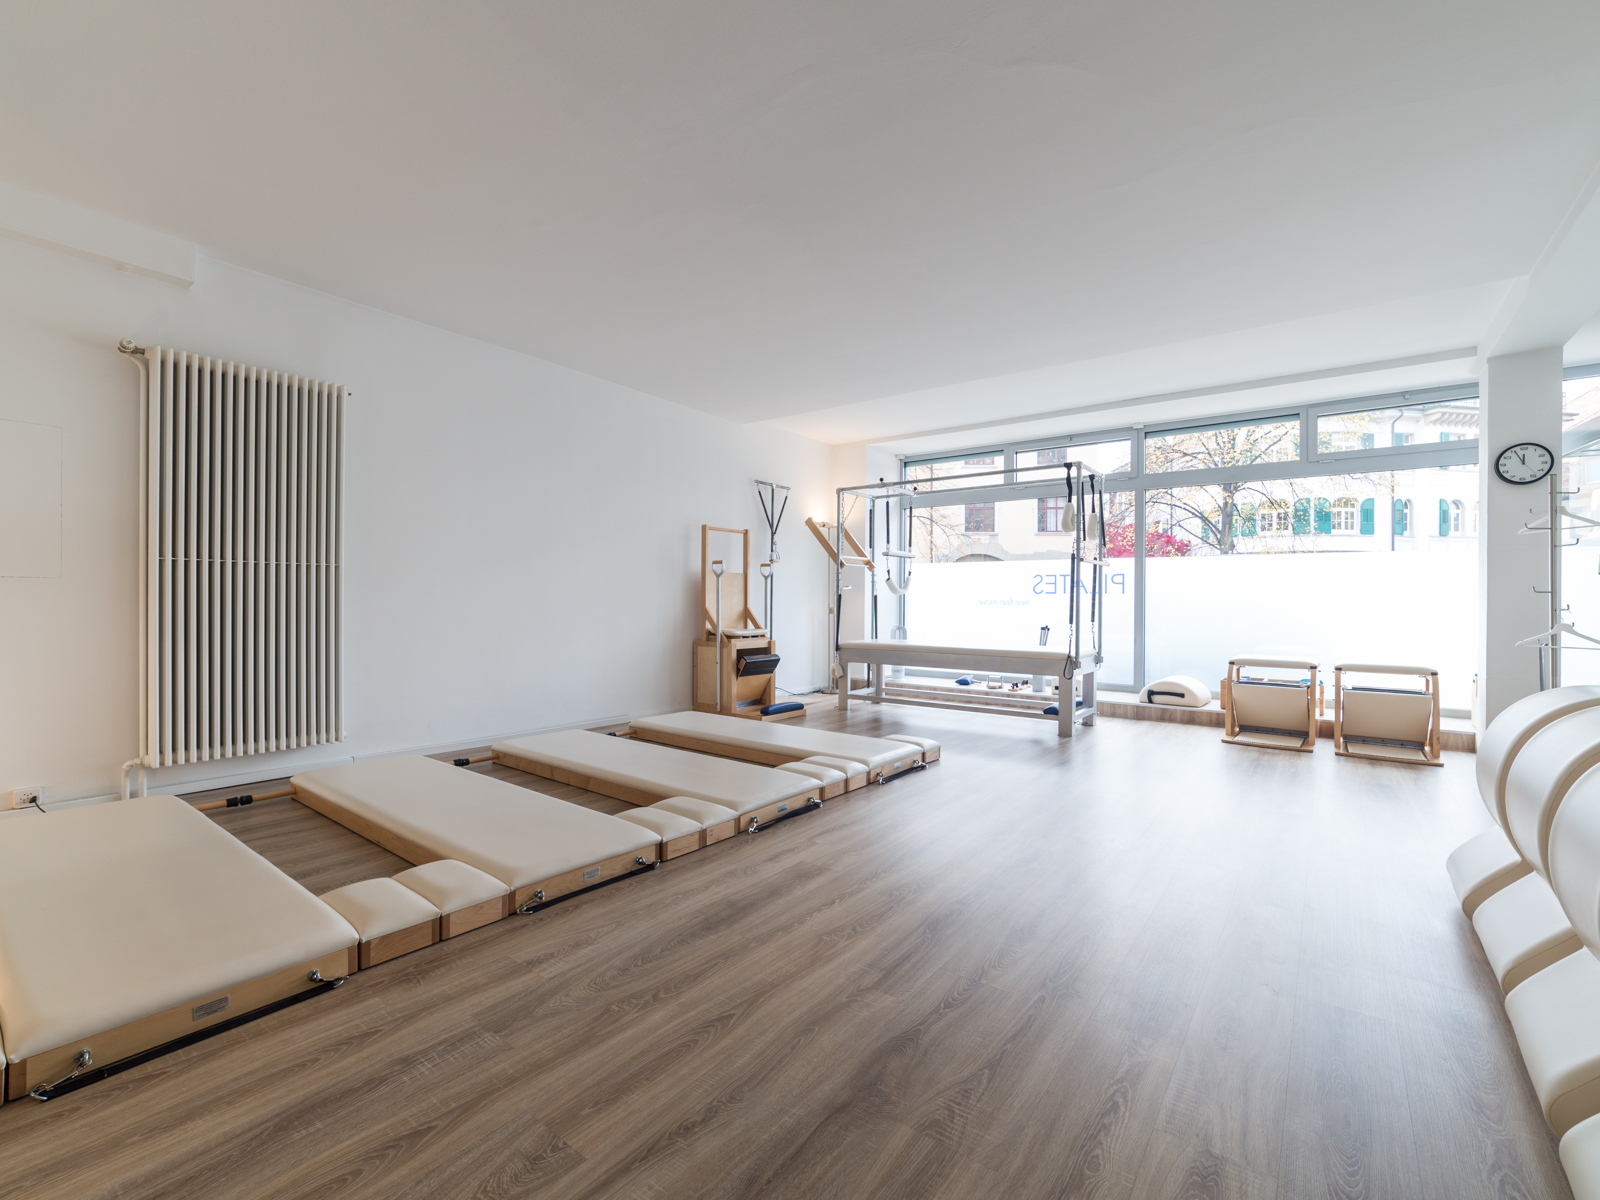 blog-raumfotos-zuerich-pilates-yoga